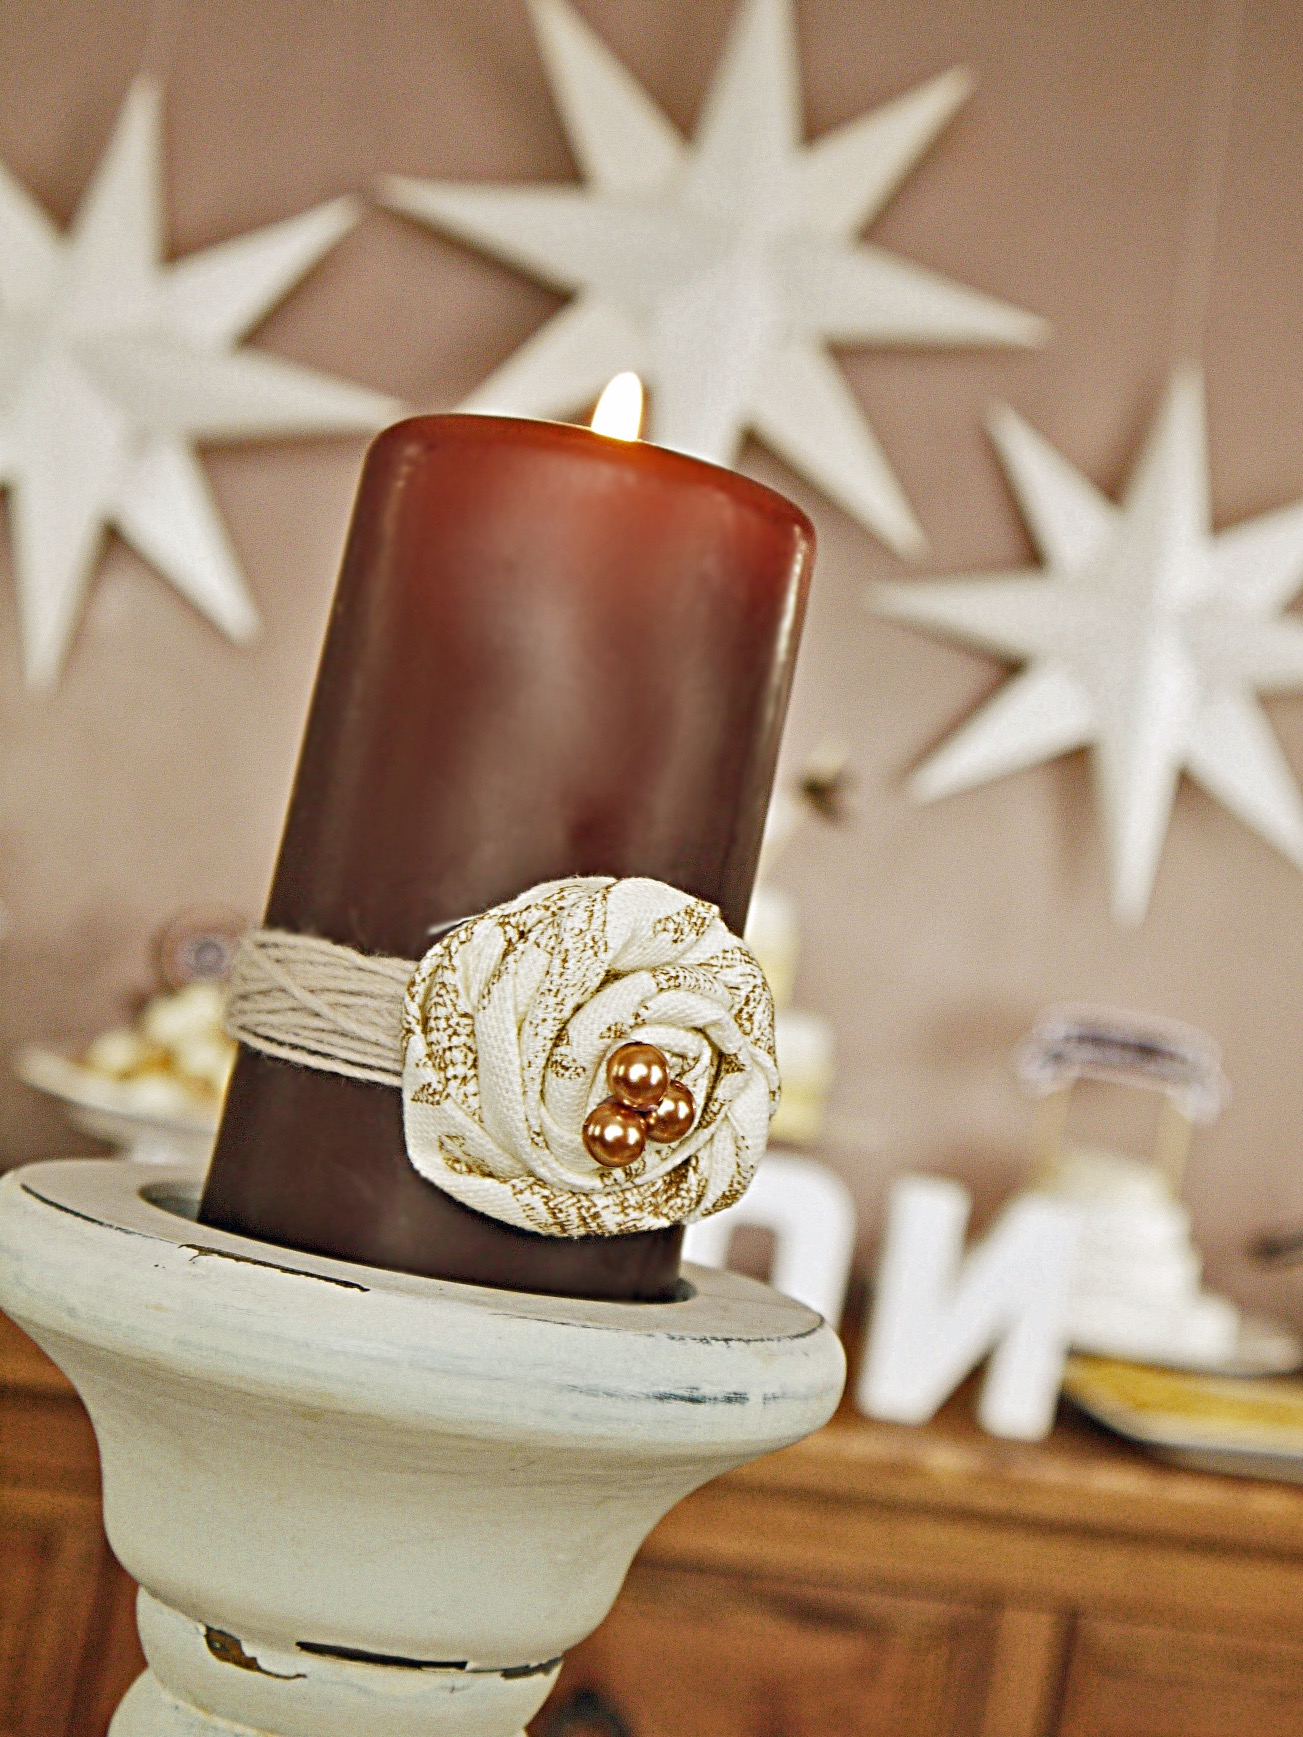 Candle Centerpiece With Rolled White Rose Decoration (Image 1 of 20)